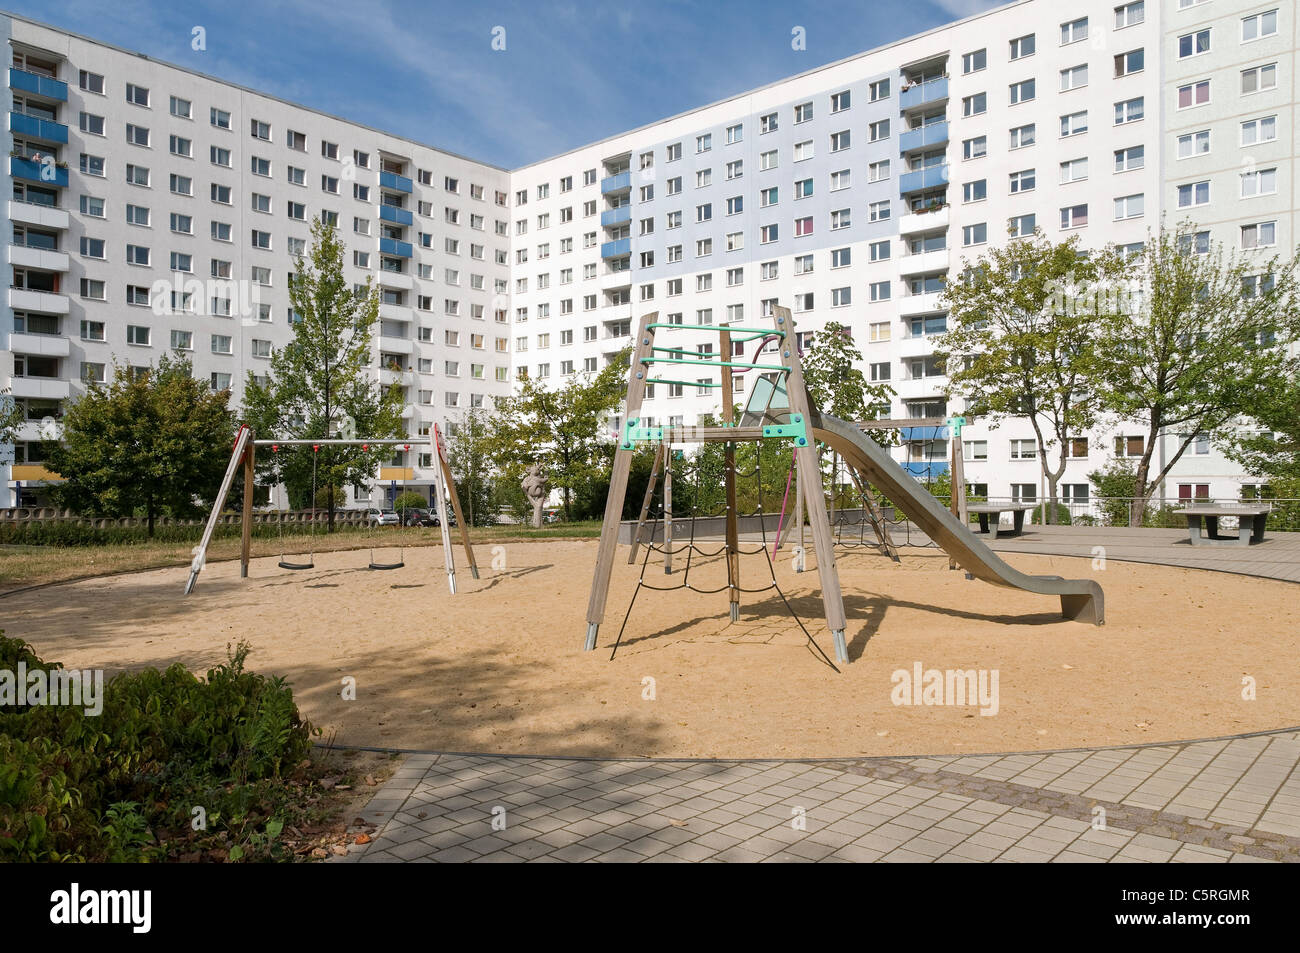 Empty playground, Plattenbau, pre-fabricated concrete buildings, social housing, residential estate, Jena, Thuringia, - Stock Image